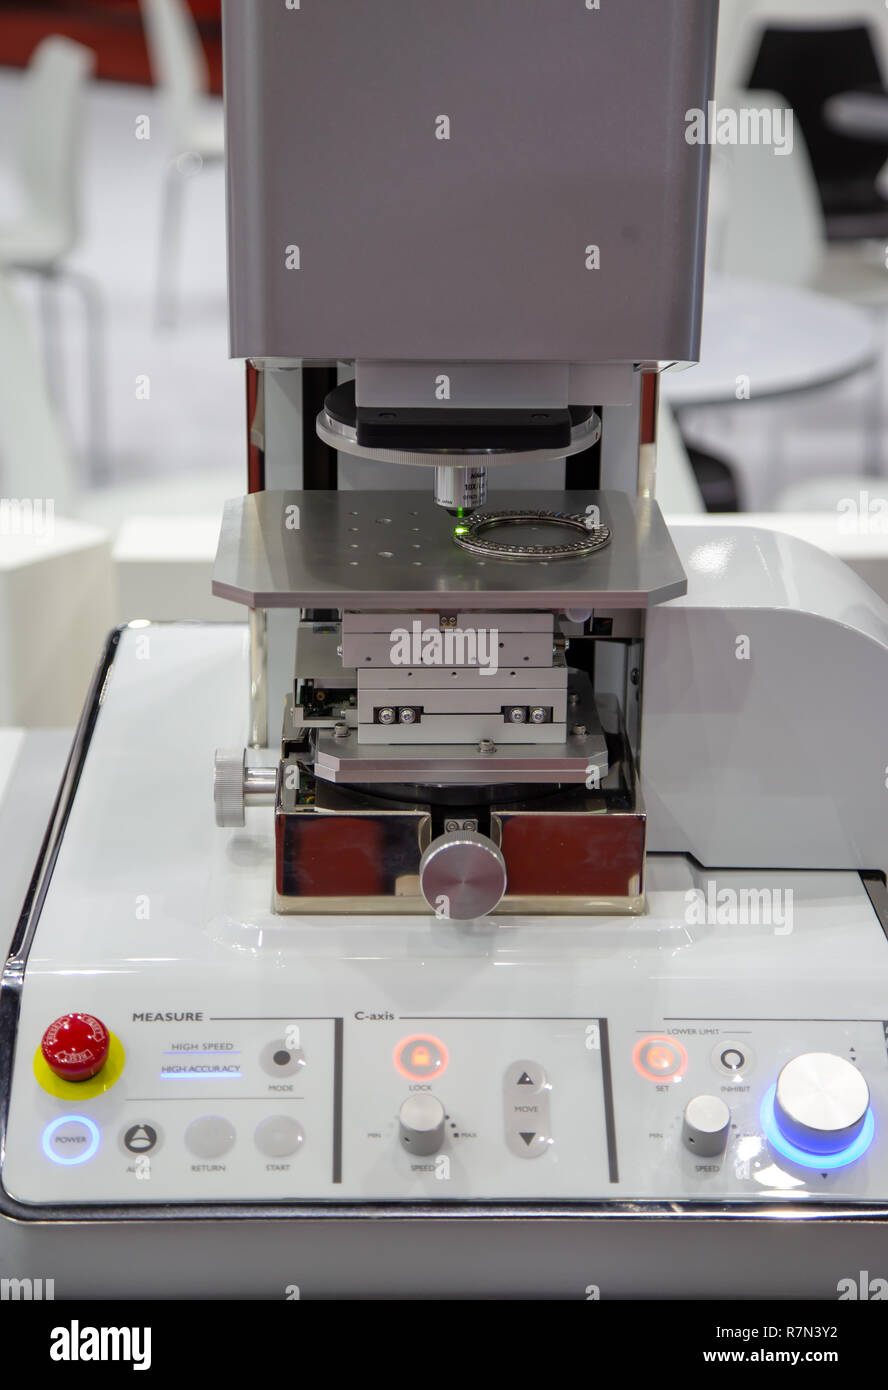 Surface roughness evaluation of workpiece by microscope - Stock Image